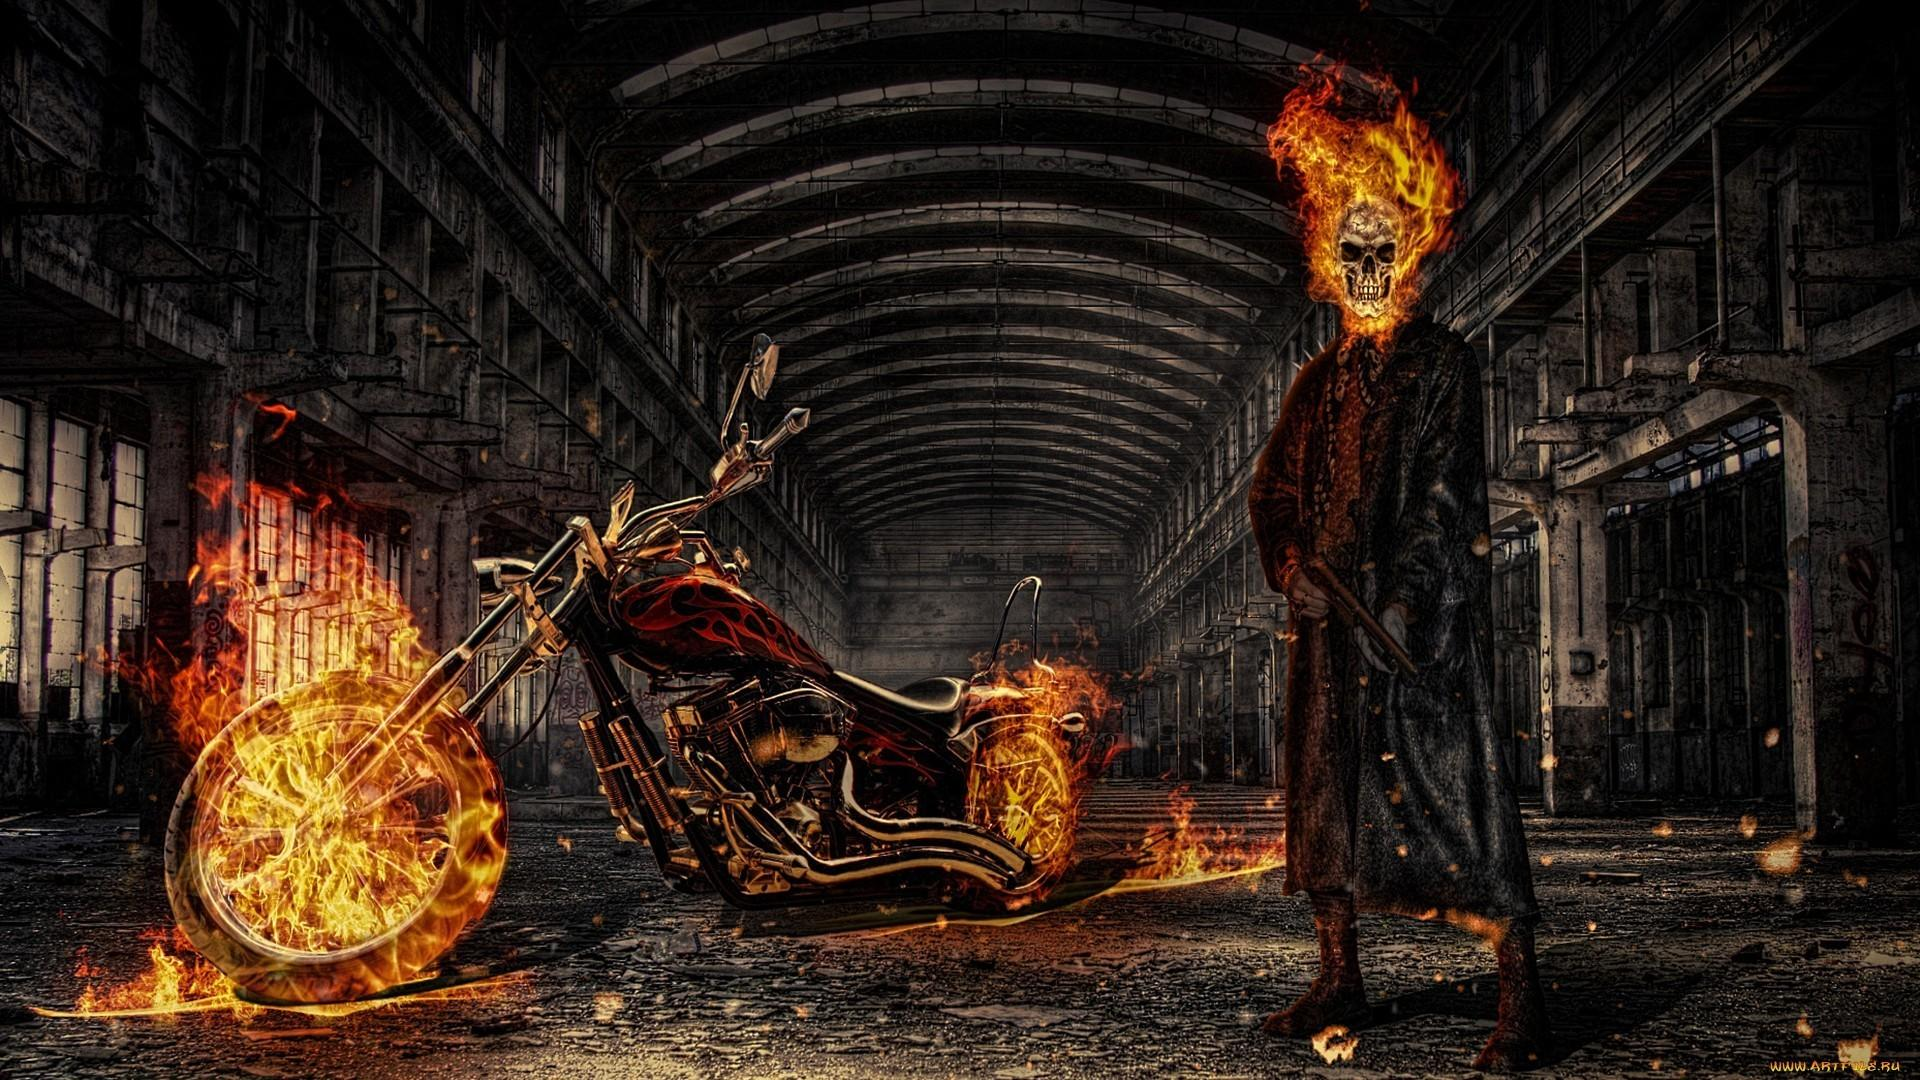 Ghost rider wallpaper 62129 1920x1080